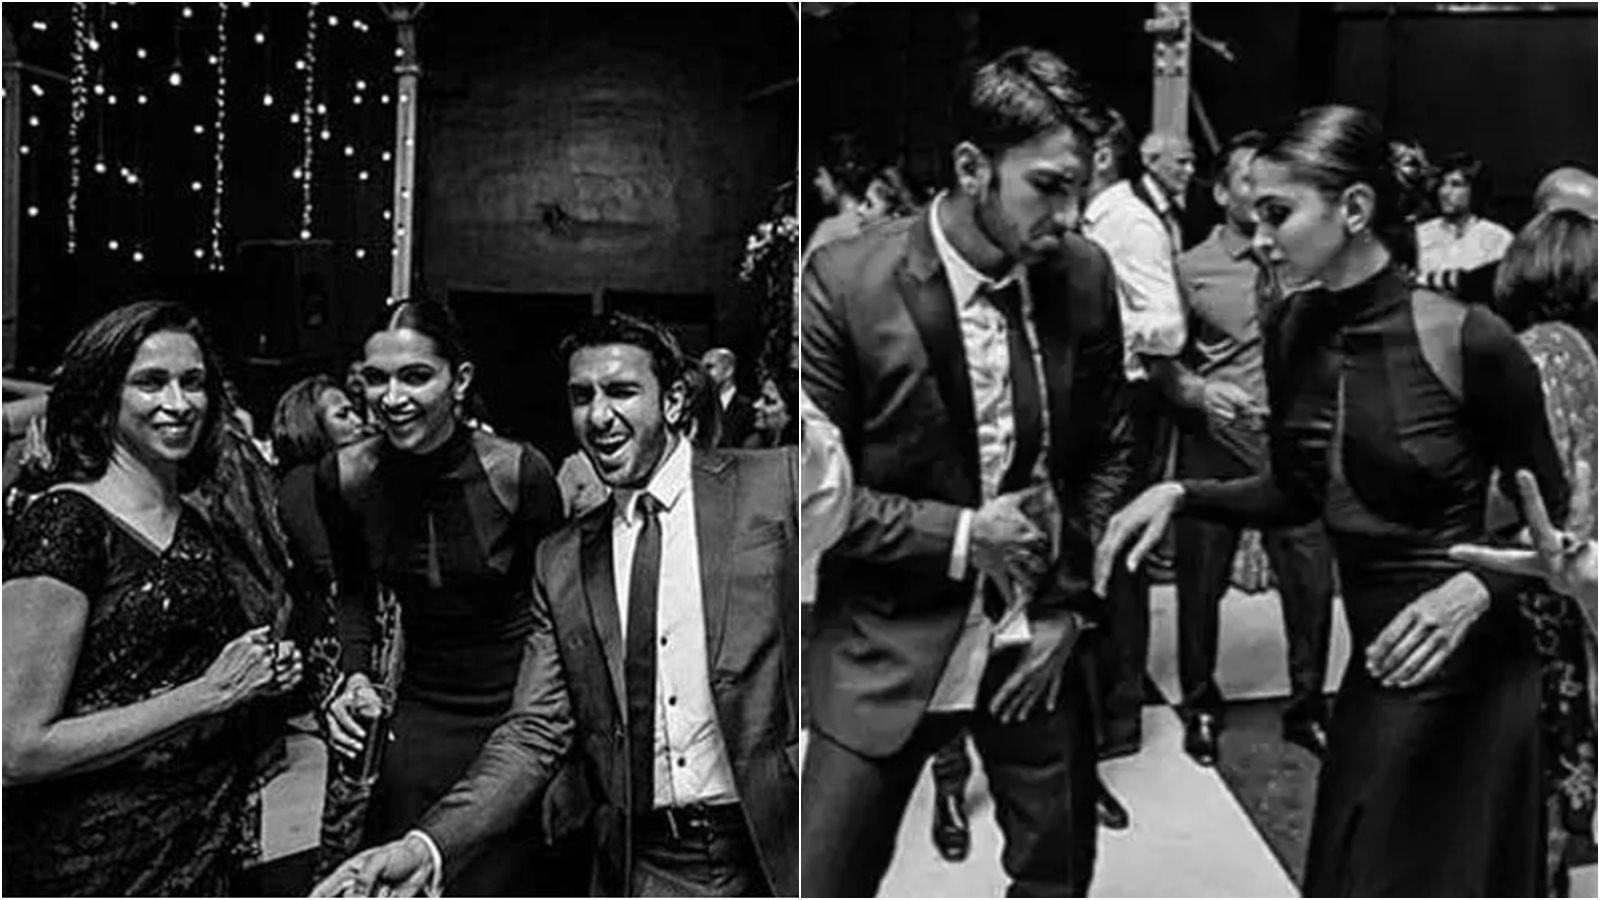 Deepika Padukone and Ranveer Singh look royal at a friend's wedding, these monochrome pics are proof!